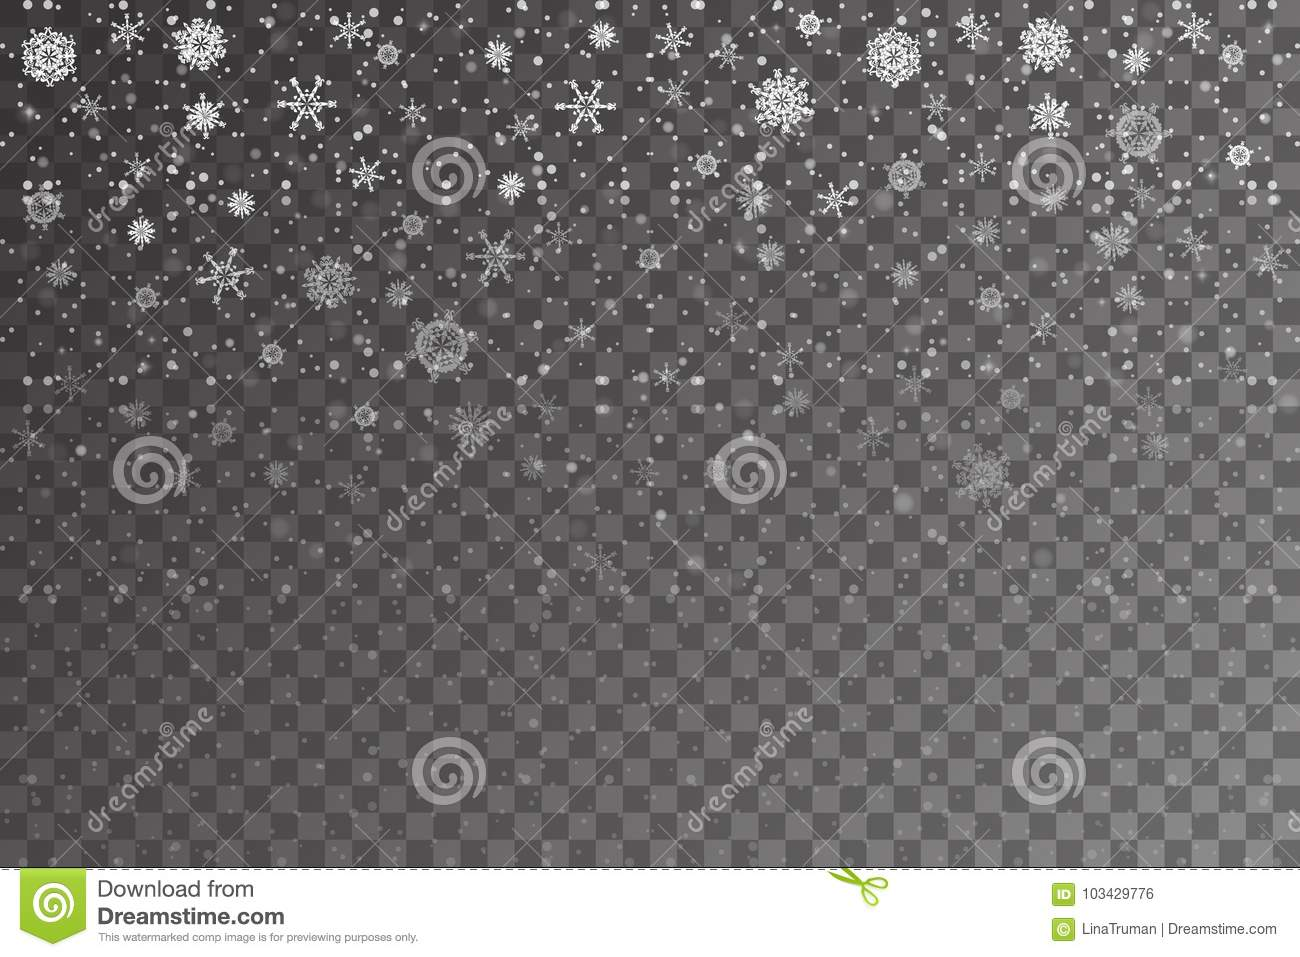 Christmas snow. Falling snowflakes on transparent background